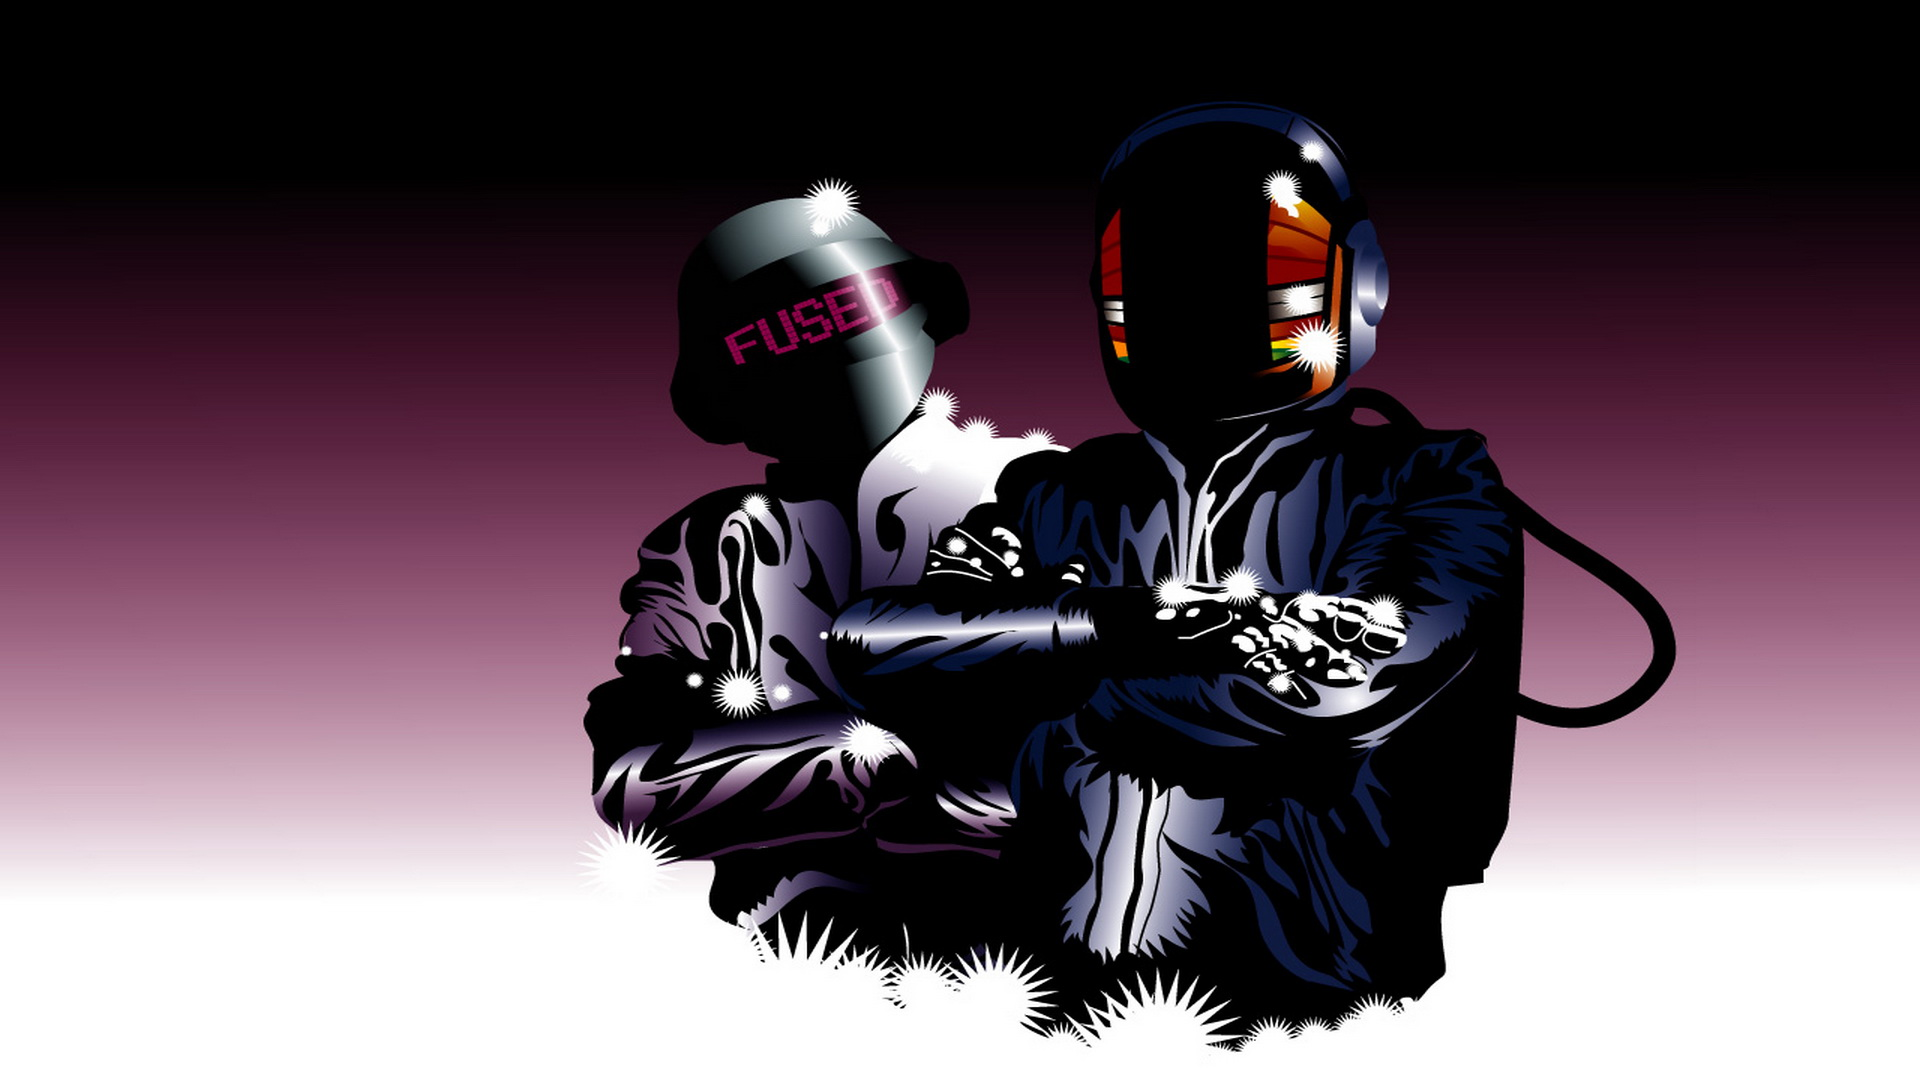 Daft Punk Full HD Wallpaper and Background Image ...